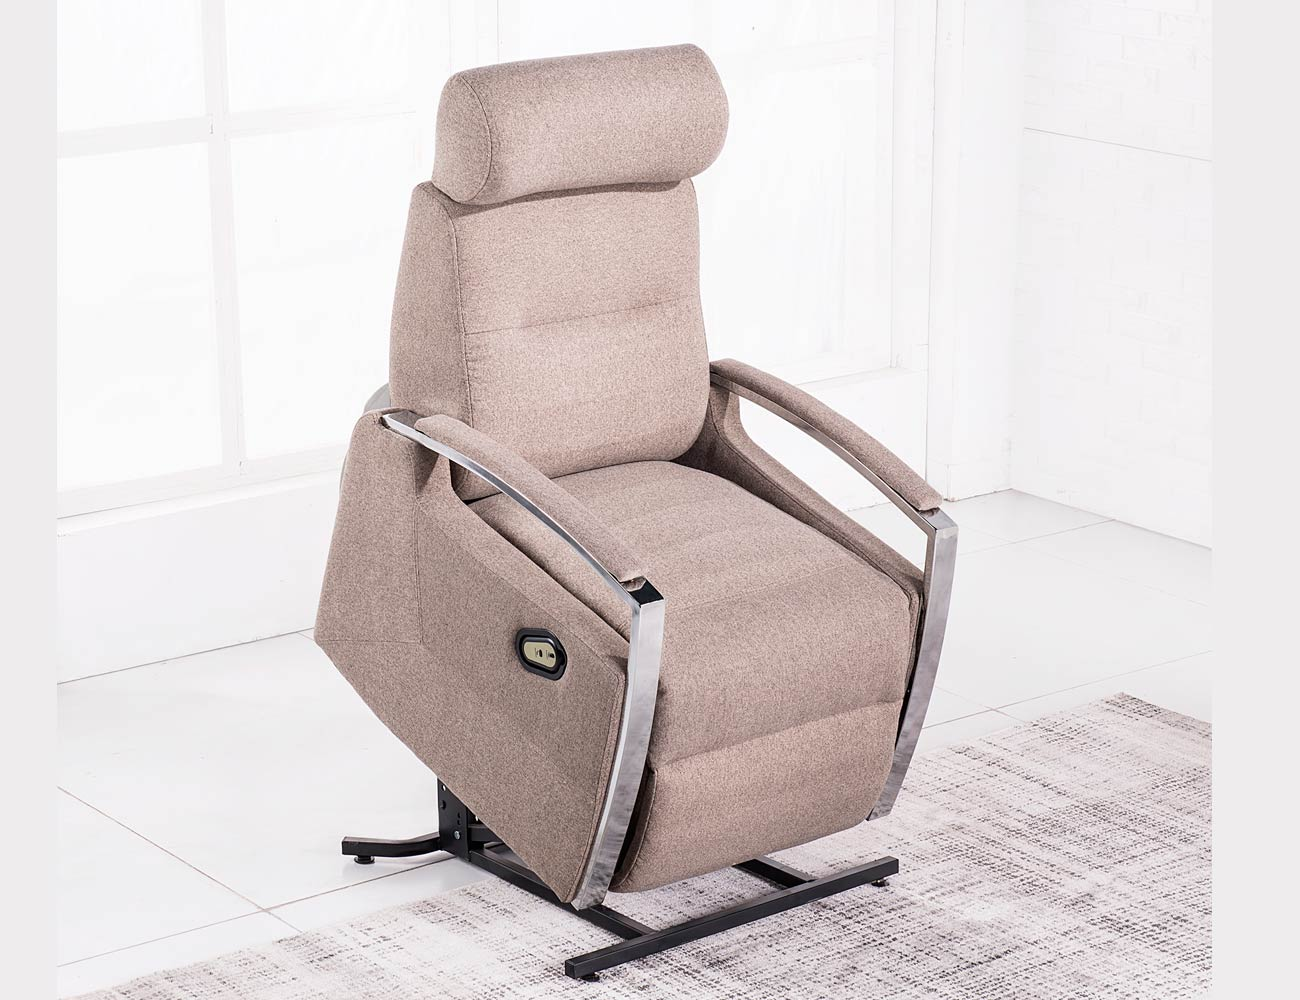 Sillon relax levanta personas power lift masaje calor moka